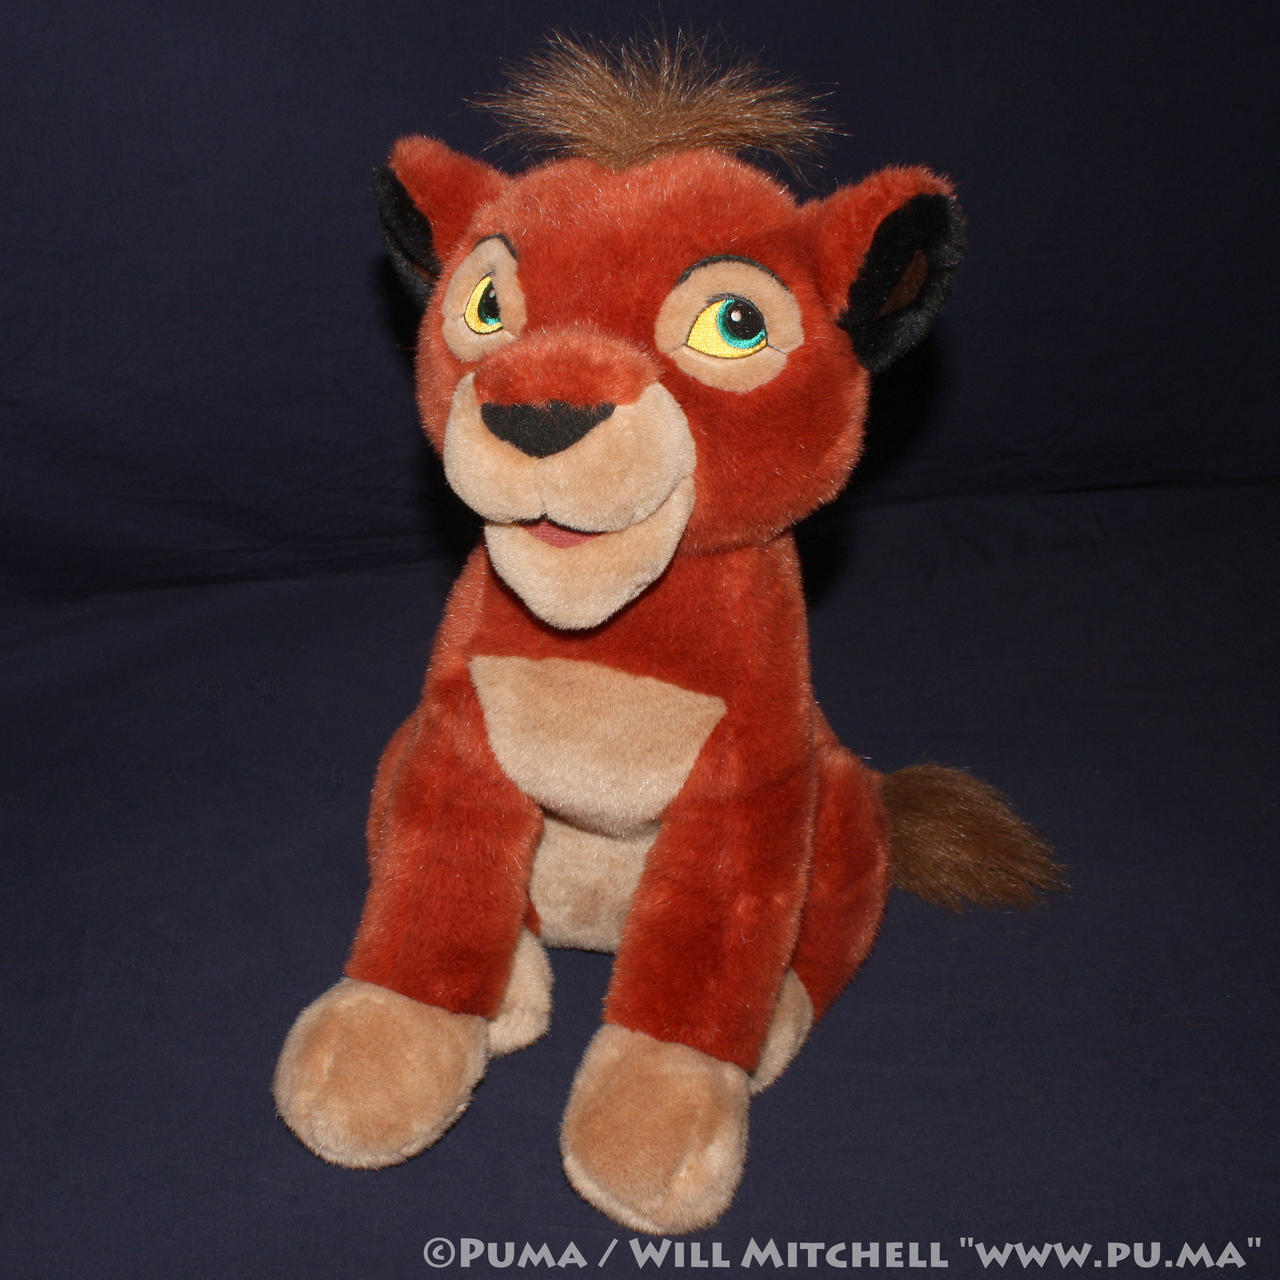 Kovu plush from Disneystore Frankfurt, Germany by dapumakat